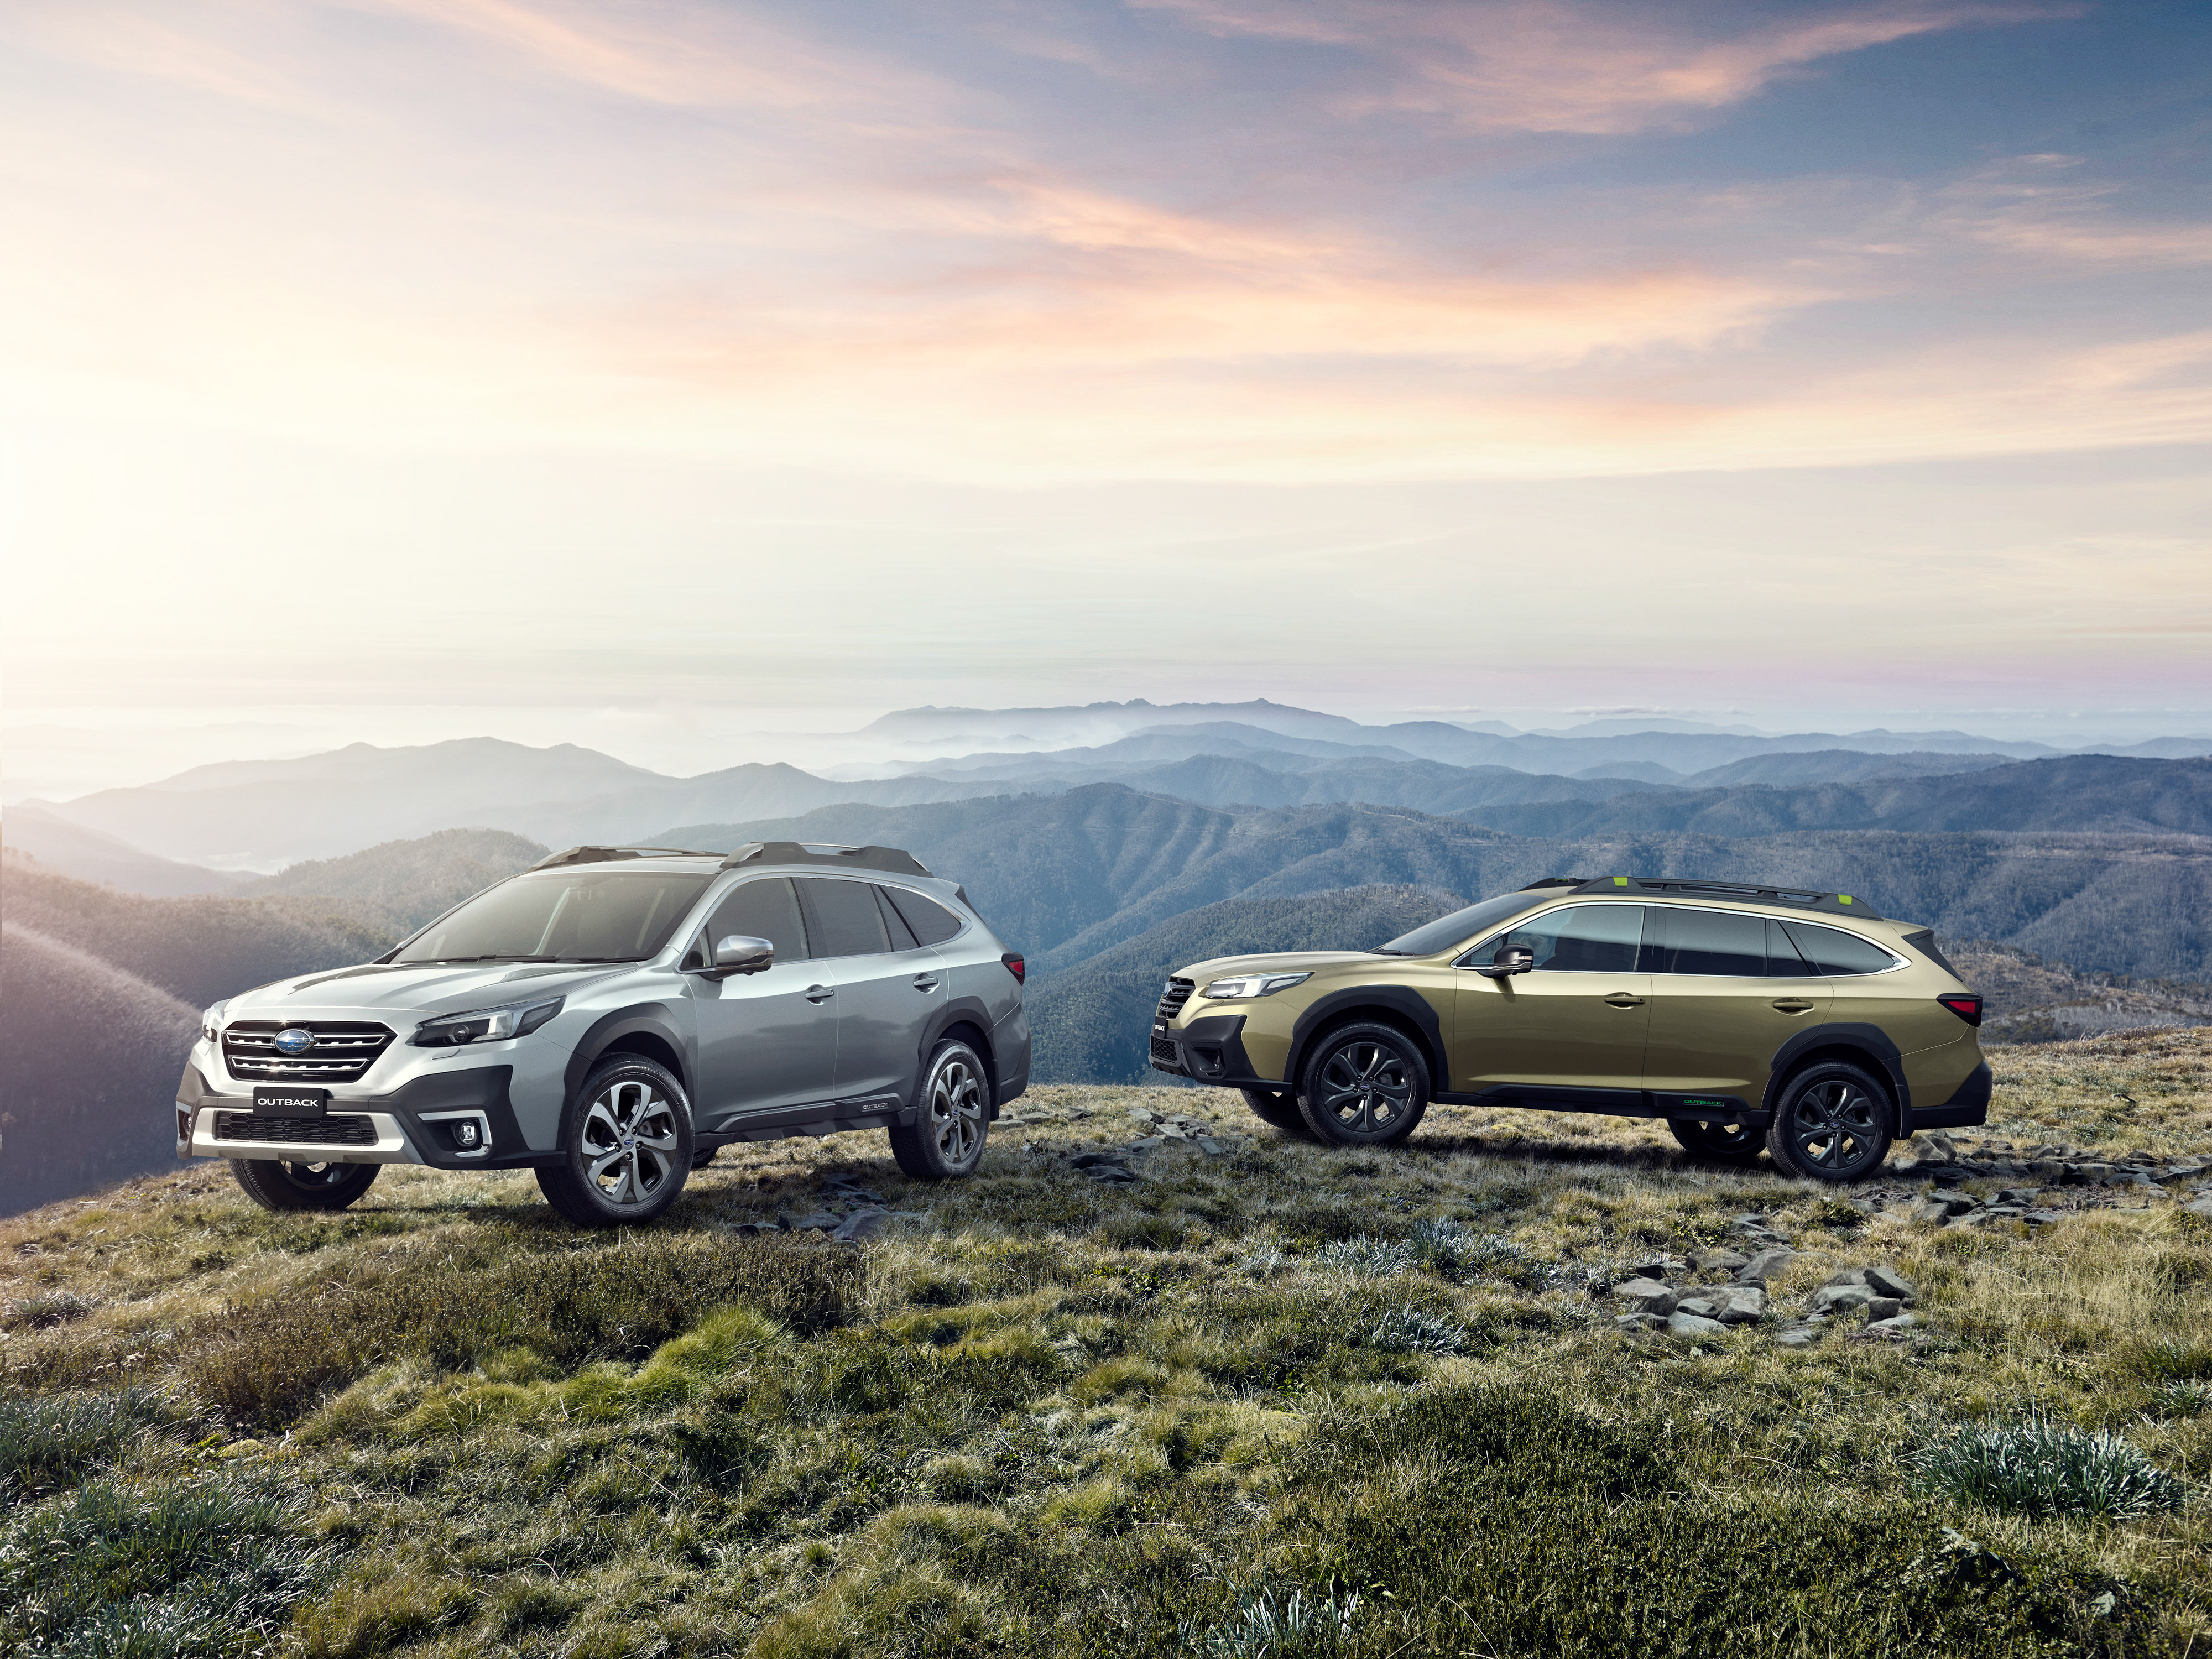 Subaru is significantly elevating the specification list across its entire new generation Outback range, which appears in showrooms from March 2021.